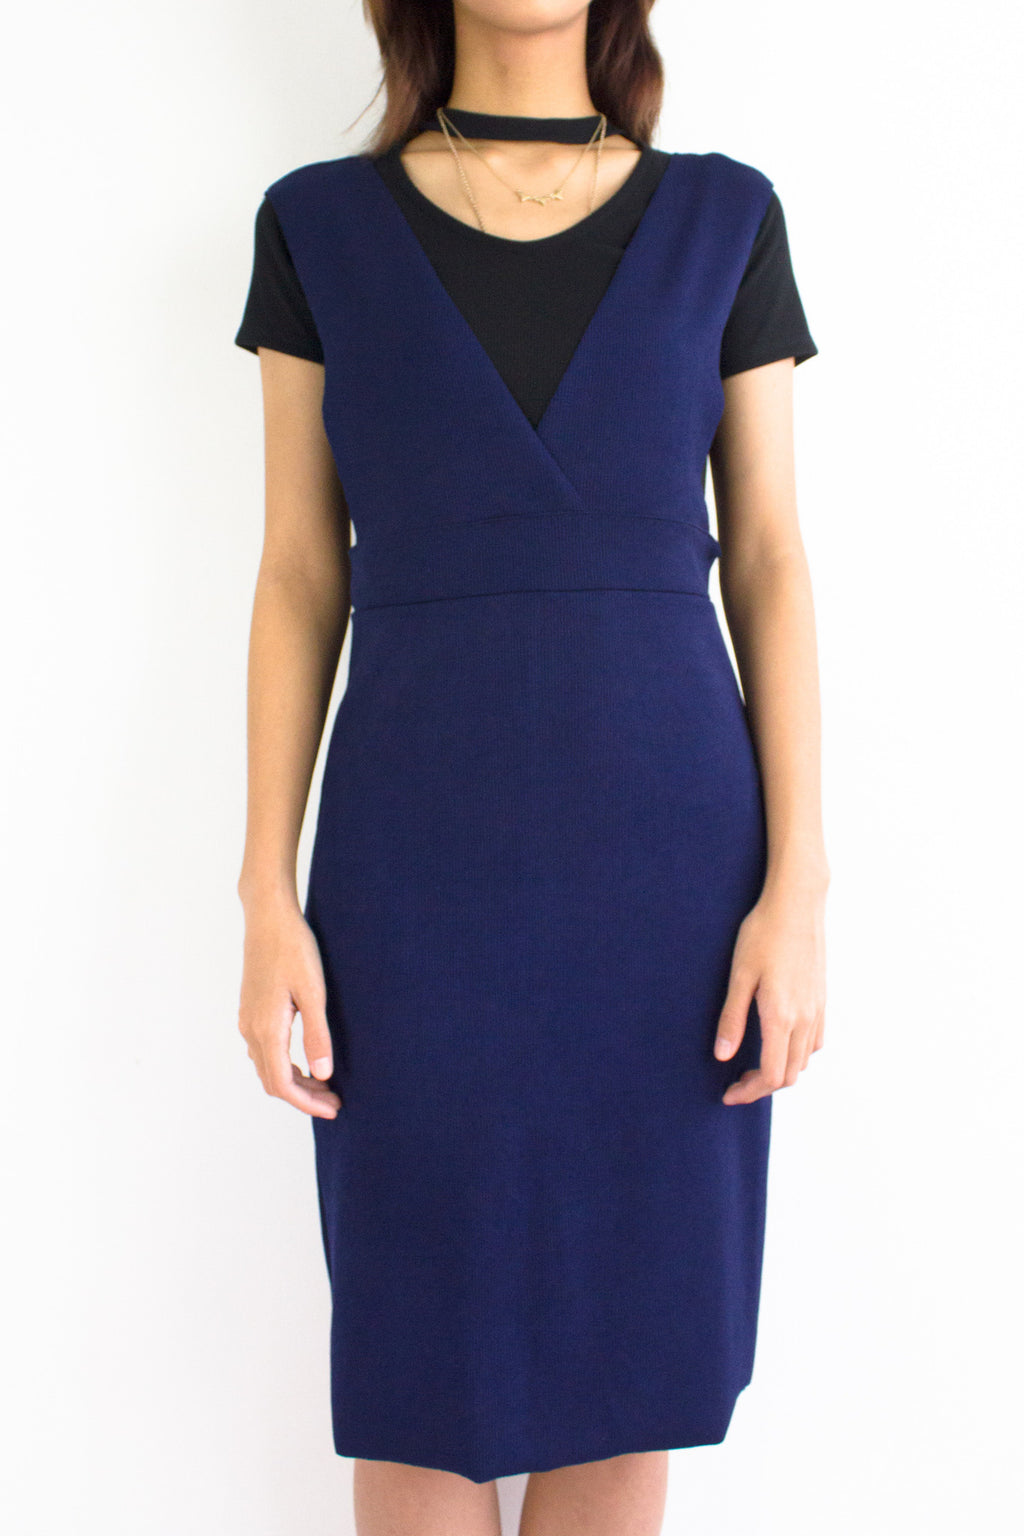 Valentina V-Neck Pinafore in Navy Blue - DRESSES - Peep Boutique